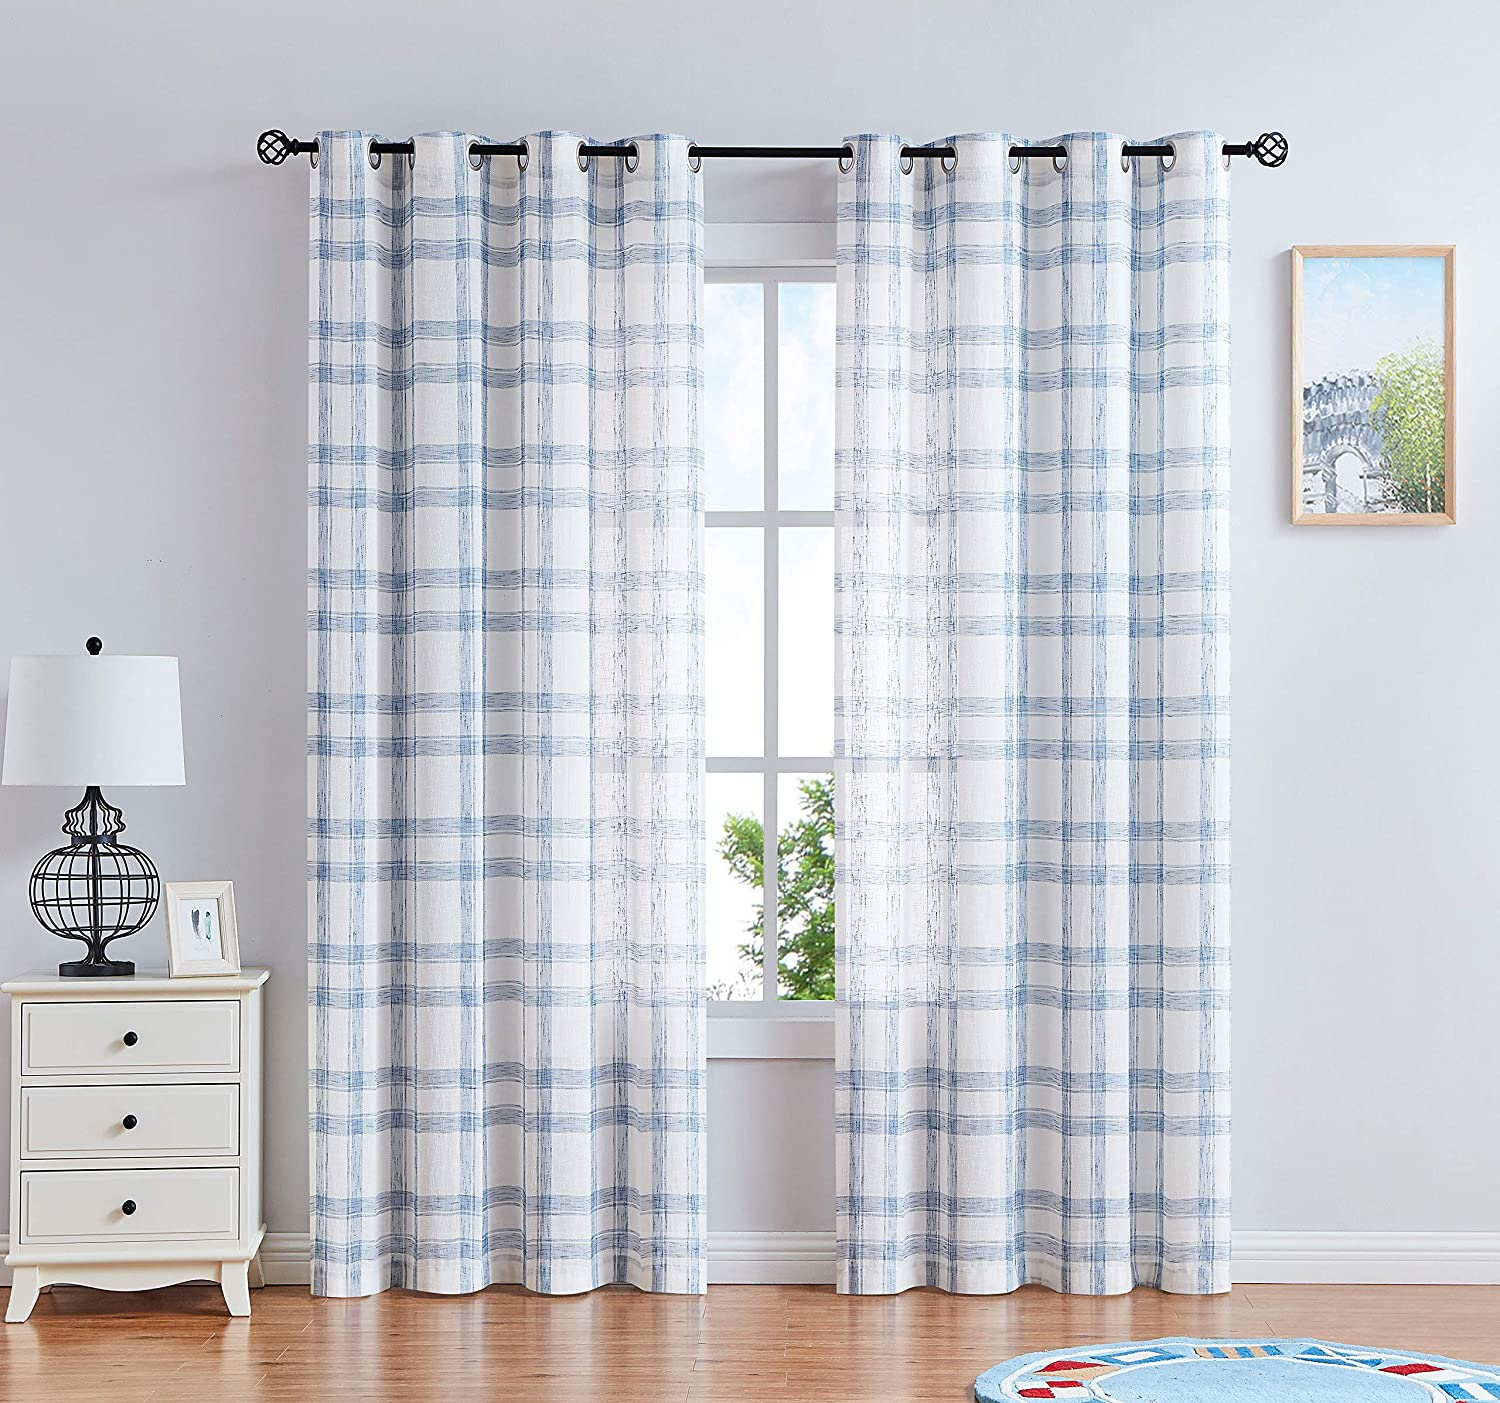 Linen Window Curtain Panel Pairs For Living Room 95 Long Geometric Check Grommets Top Semi Sheer Window Treatment Heavy Rustic Farmhouse Style Drapes For Bedroom 54 X95 X2 Blue White Amazon Ca Home Kitchen